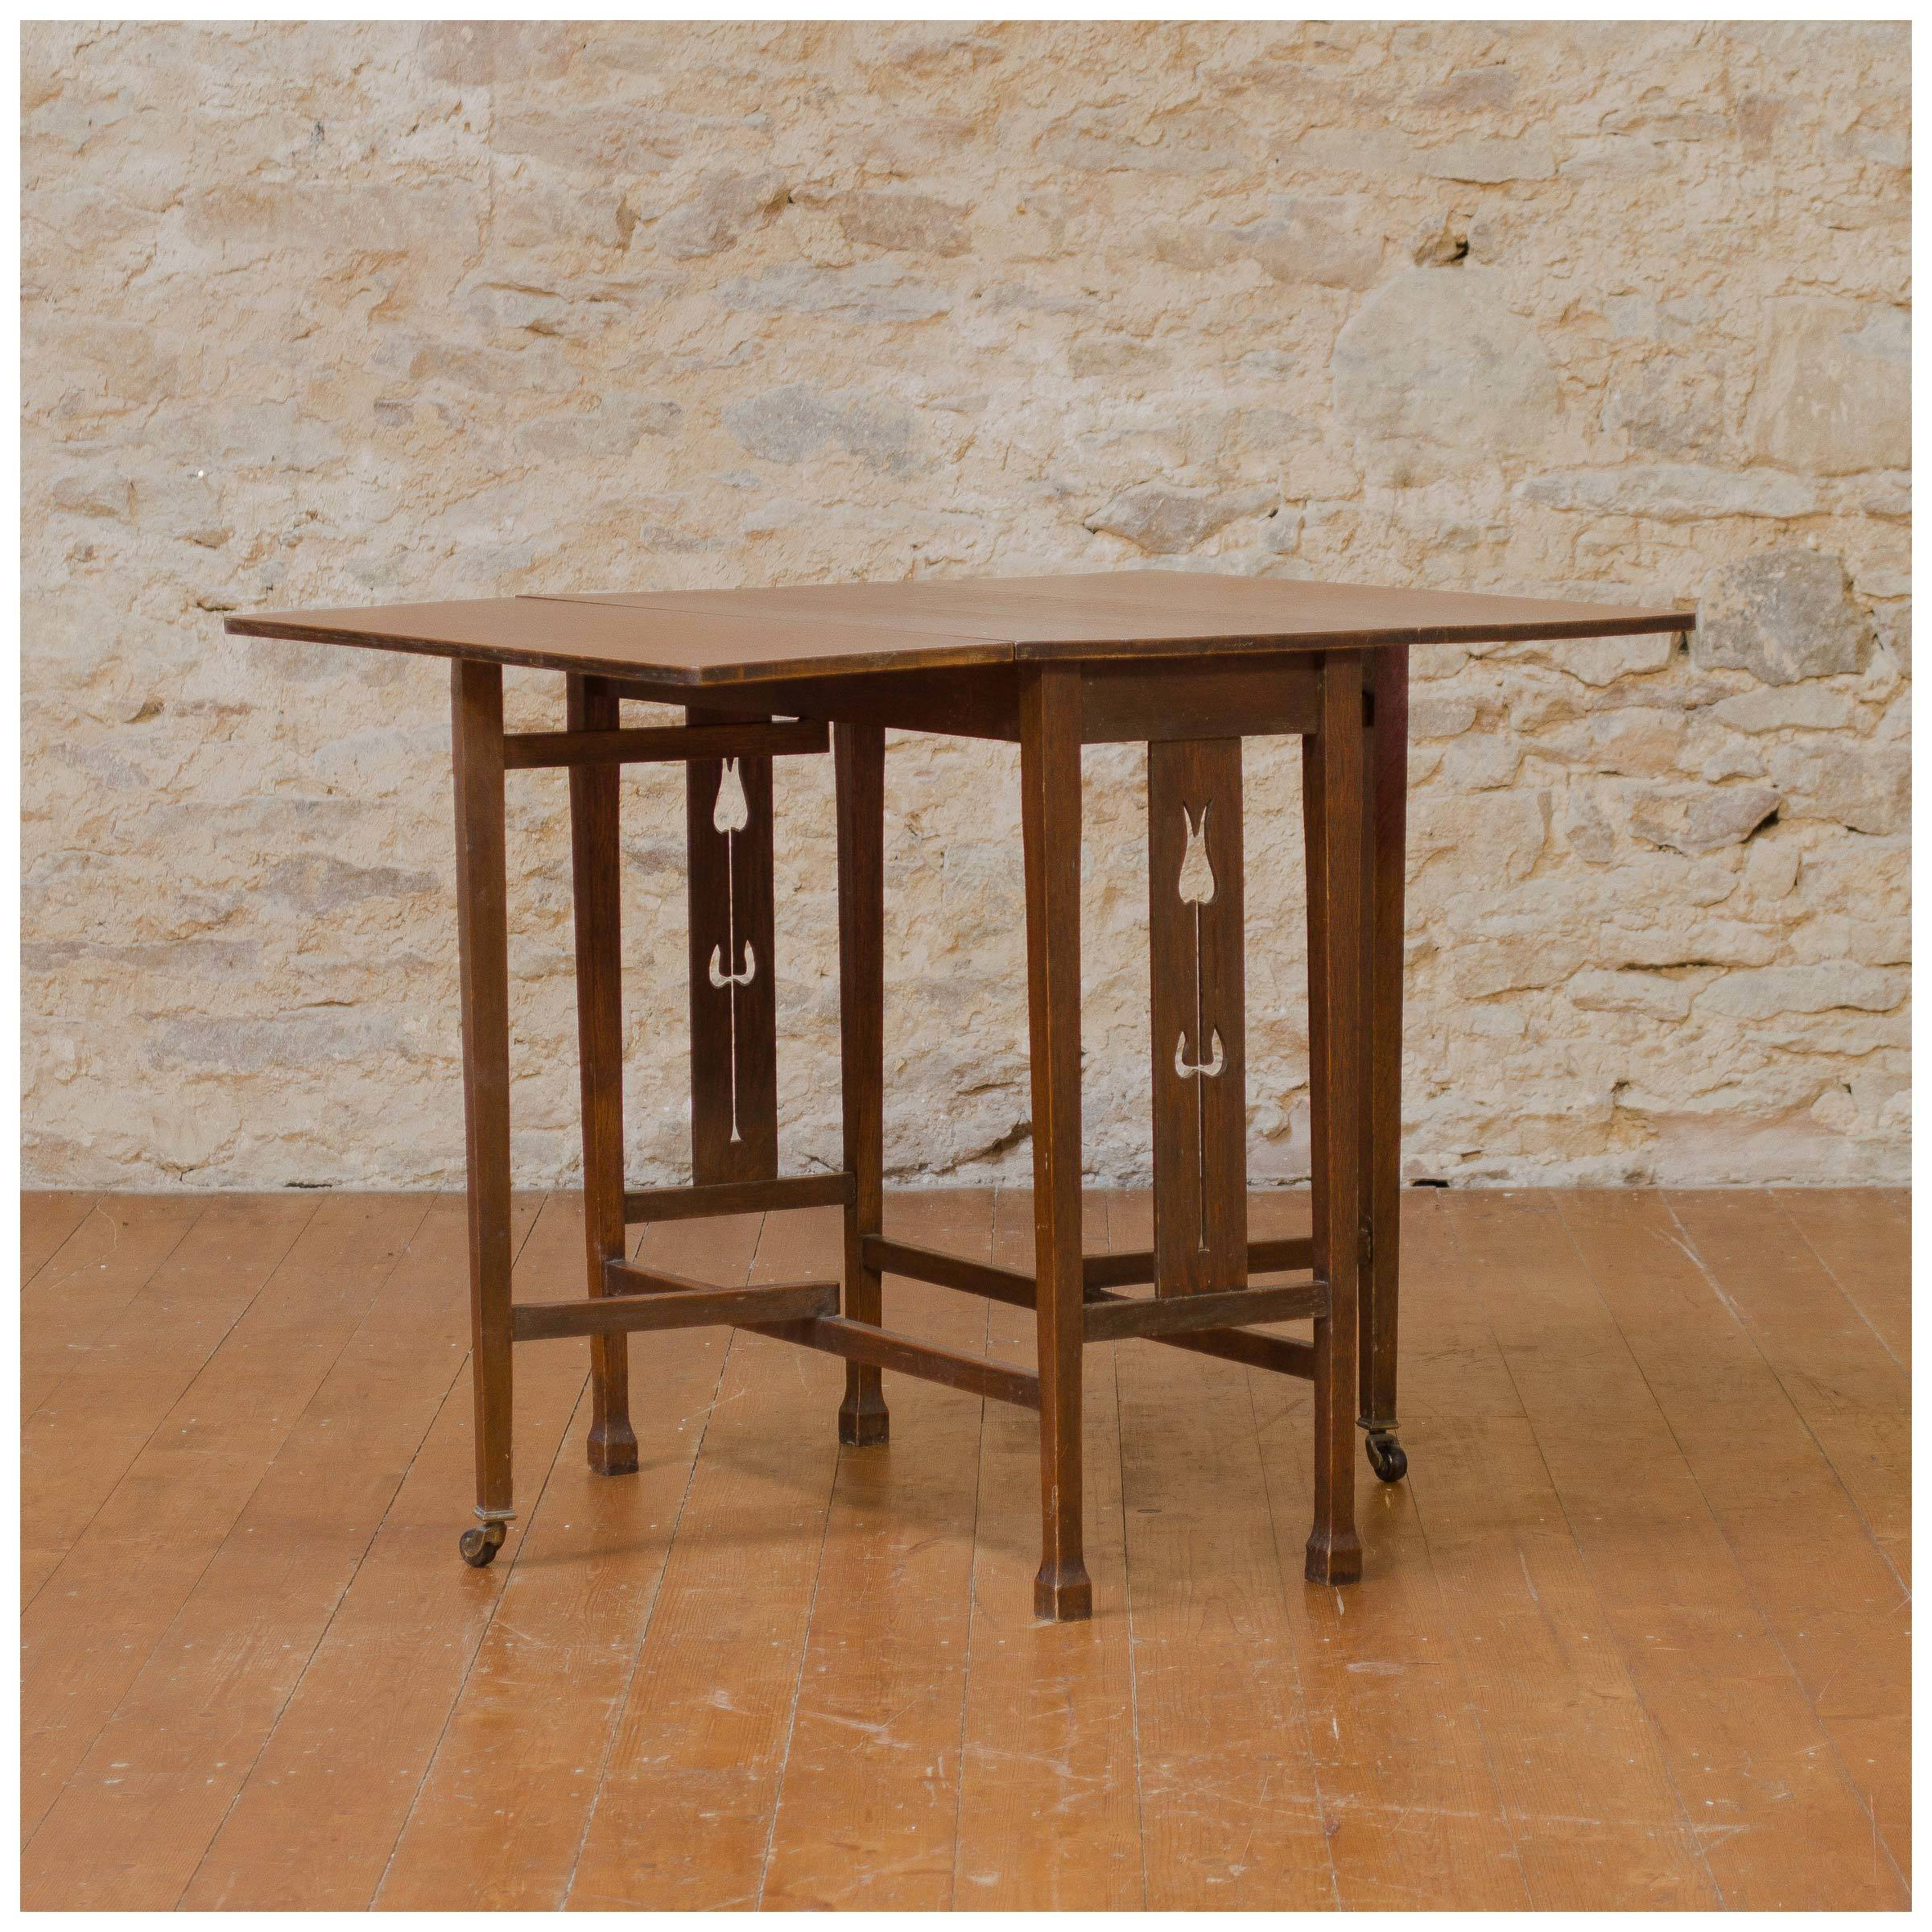 superior furniture new at federal table tables pembroke maple drop leaf id americana f american master tiger england